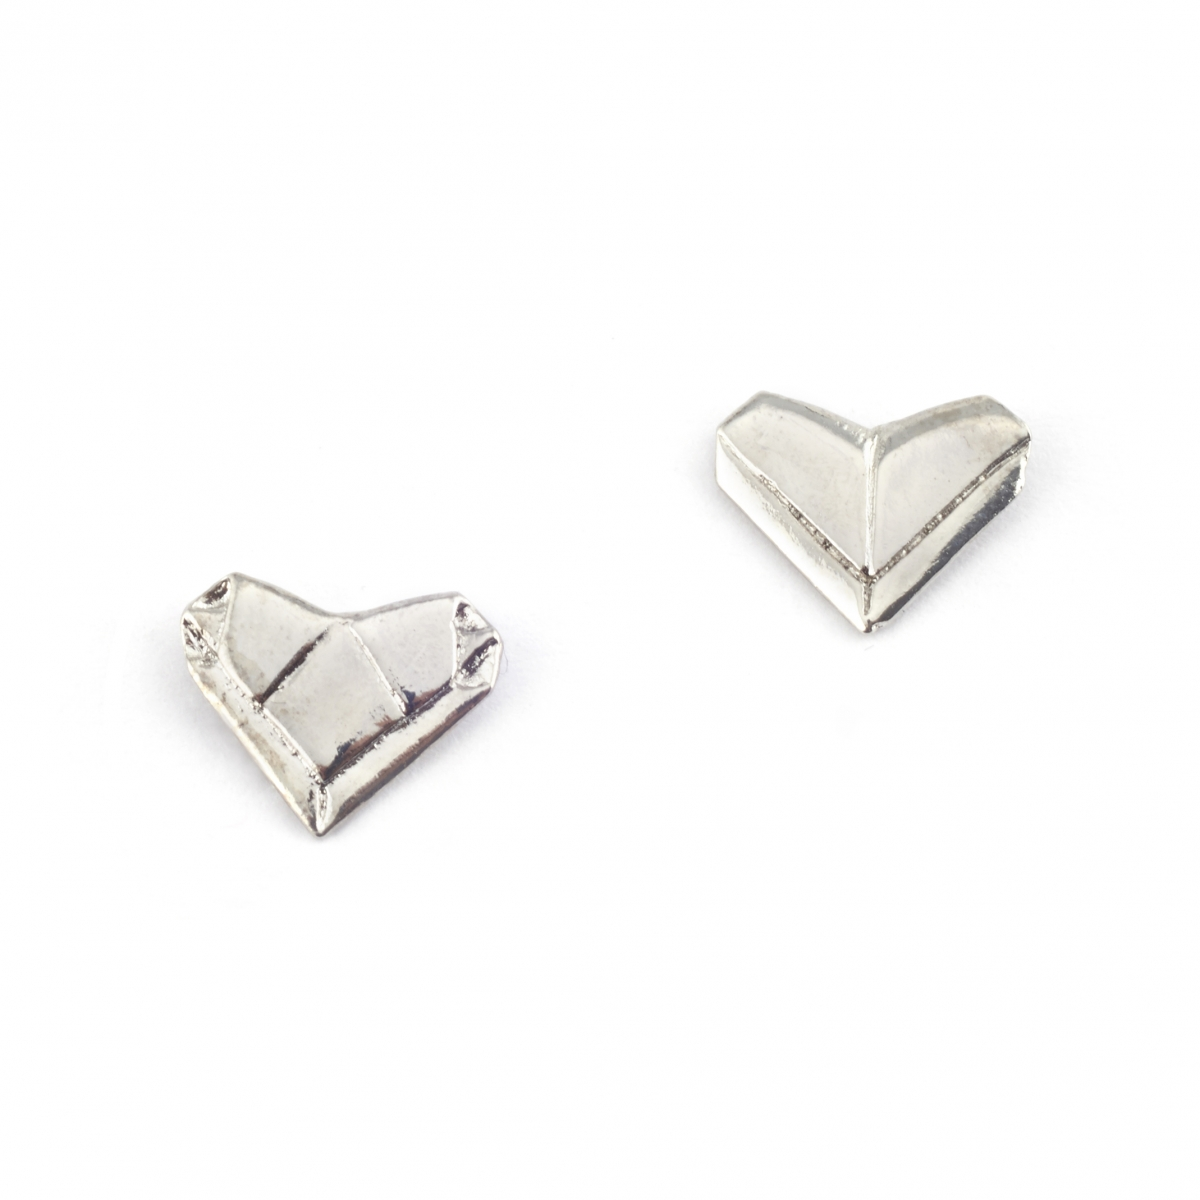 SILVER ORIGAMI HEART EARRINGS | Fashion Jewellery - photo#40